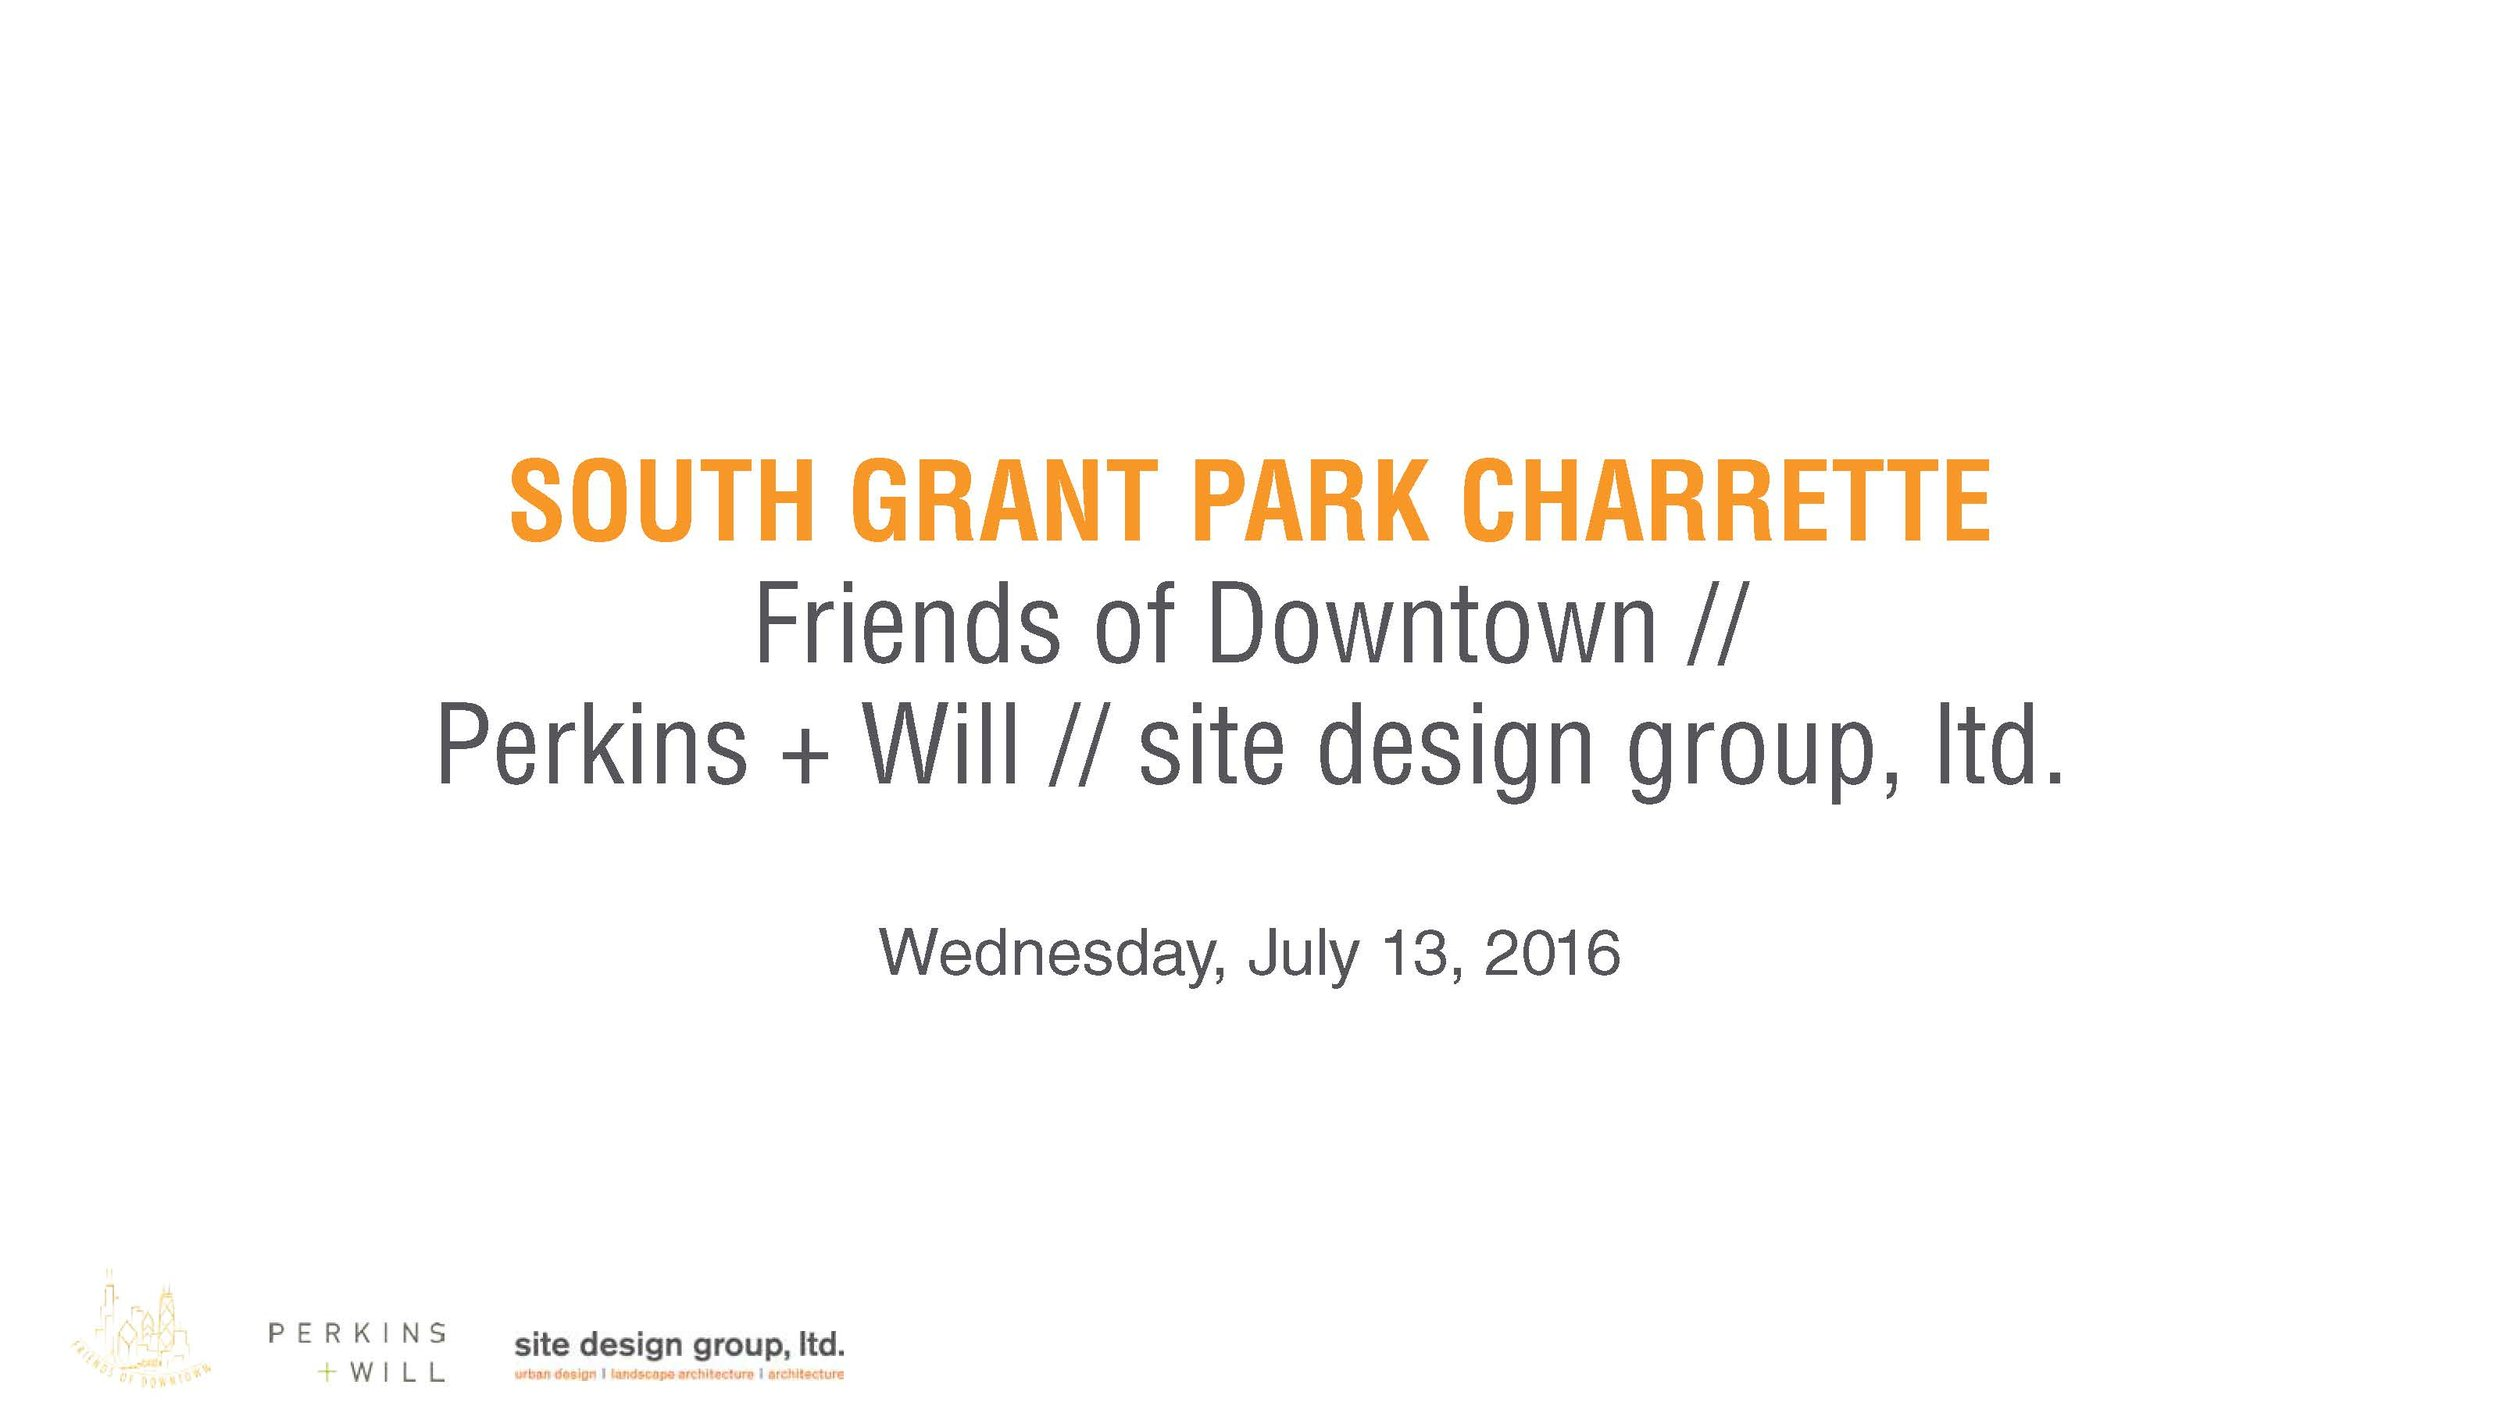 7741_20160713_South Grant Park Charrette Presentation_low res_Page_01.jpg